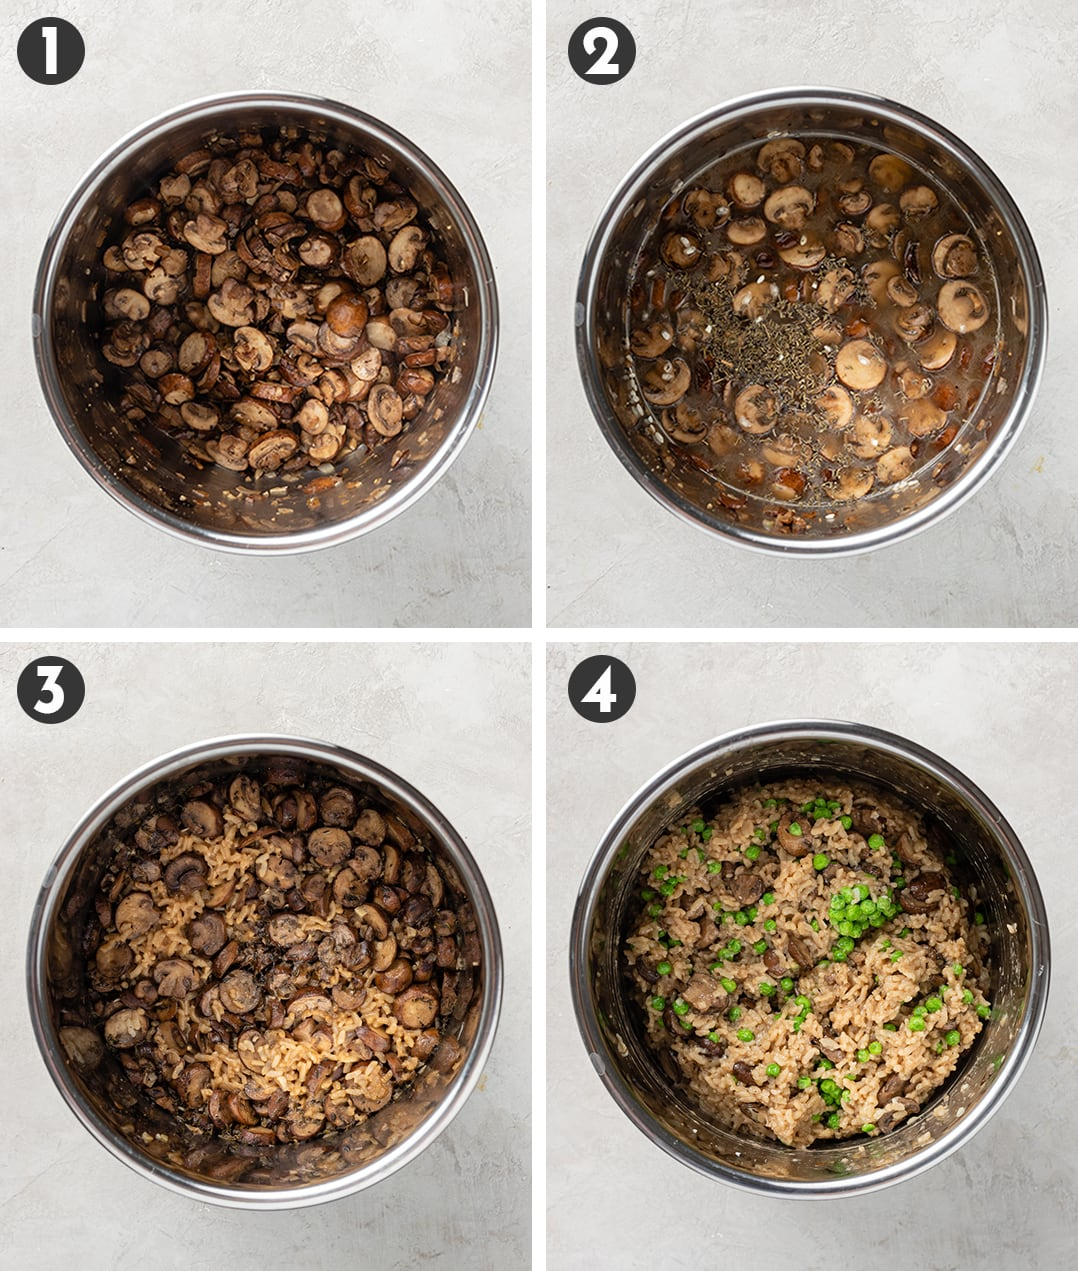 Step by step photos showing (1) mushrooms sauteed in Instant Pot, (2) those mushrooms with broth and seasoning, (3) that mixture cooked with arborio rice, (4) a finished risotto with peas stirred in.